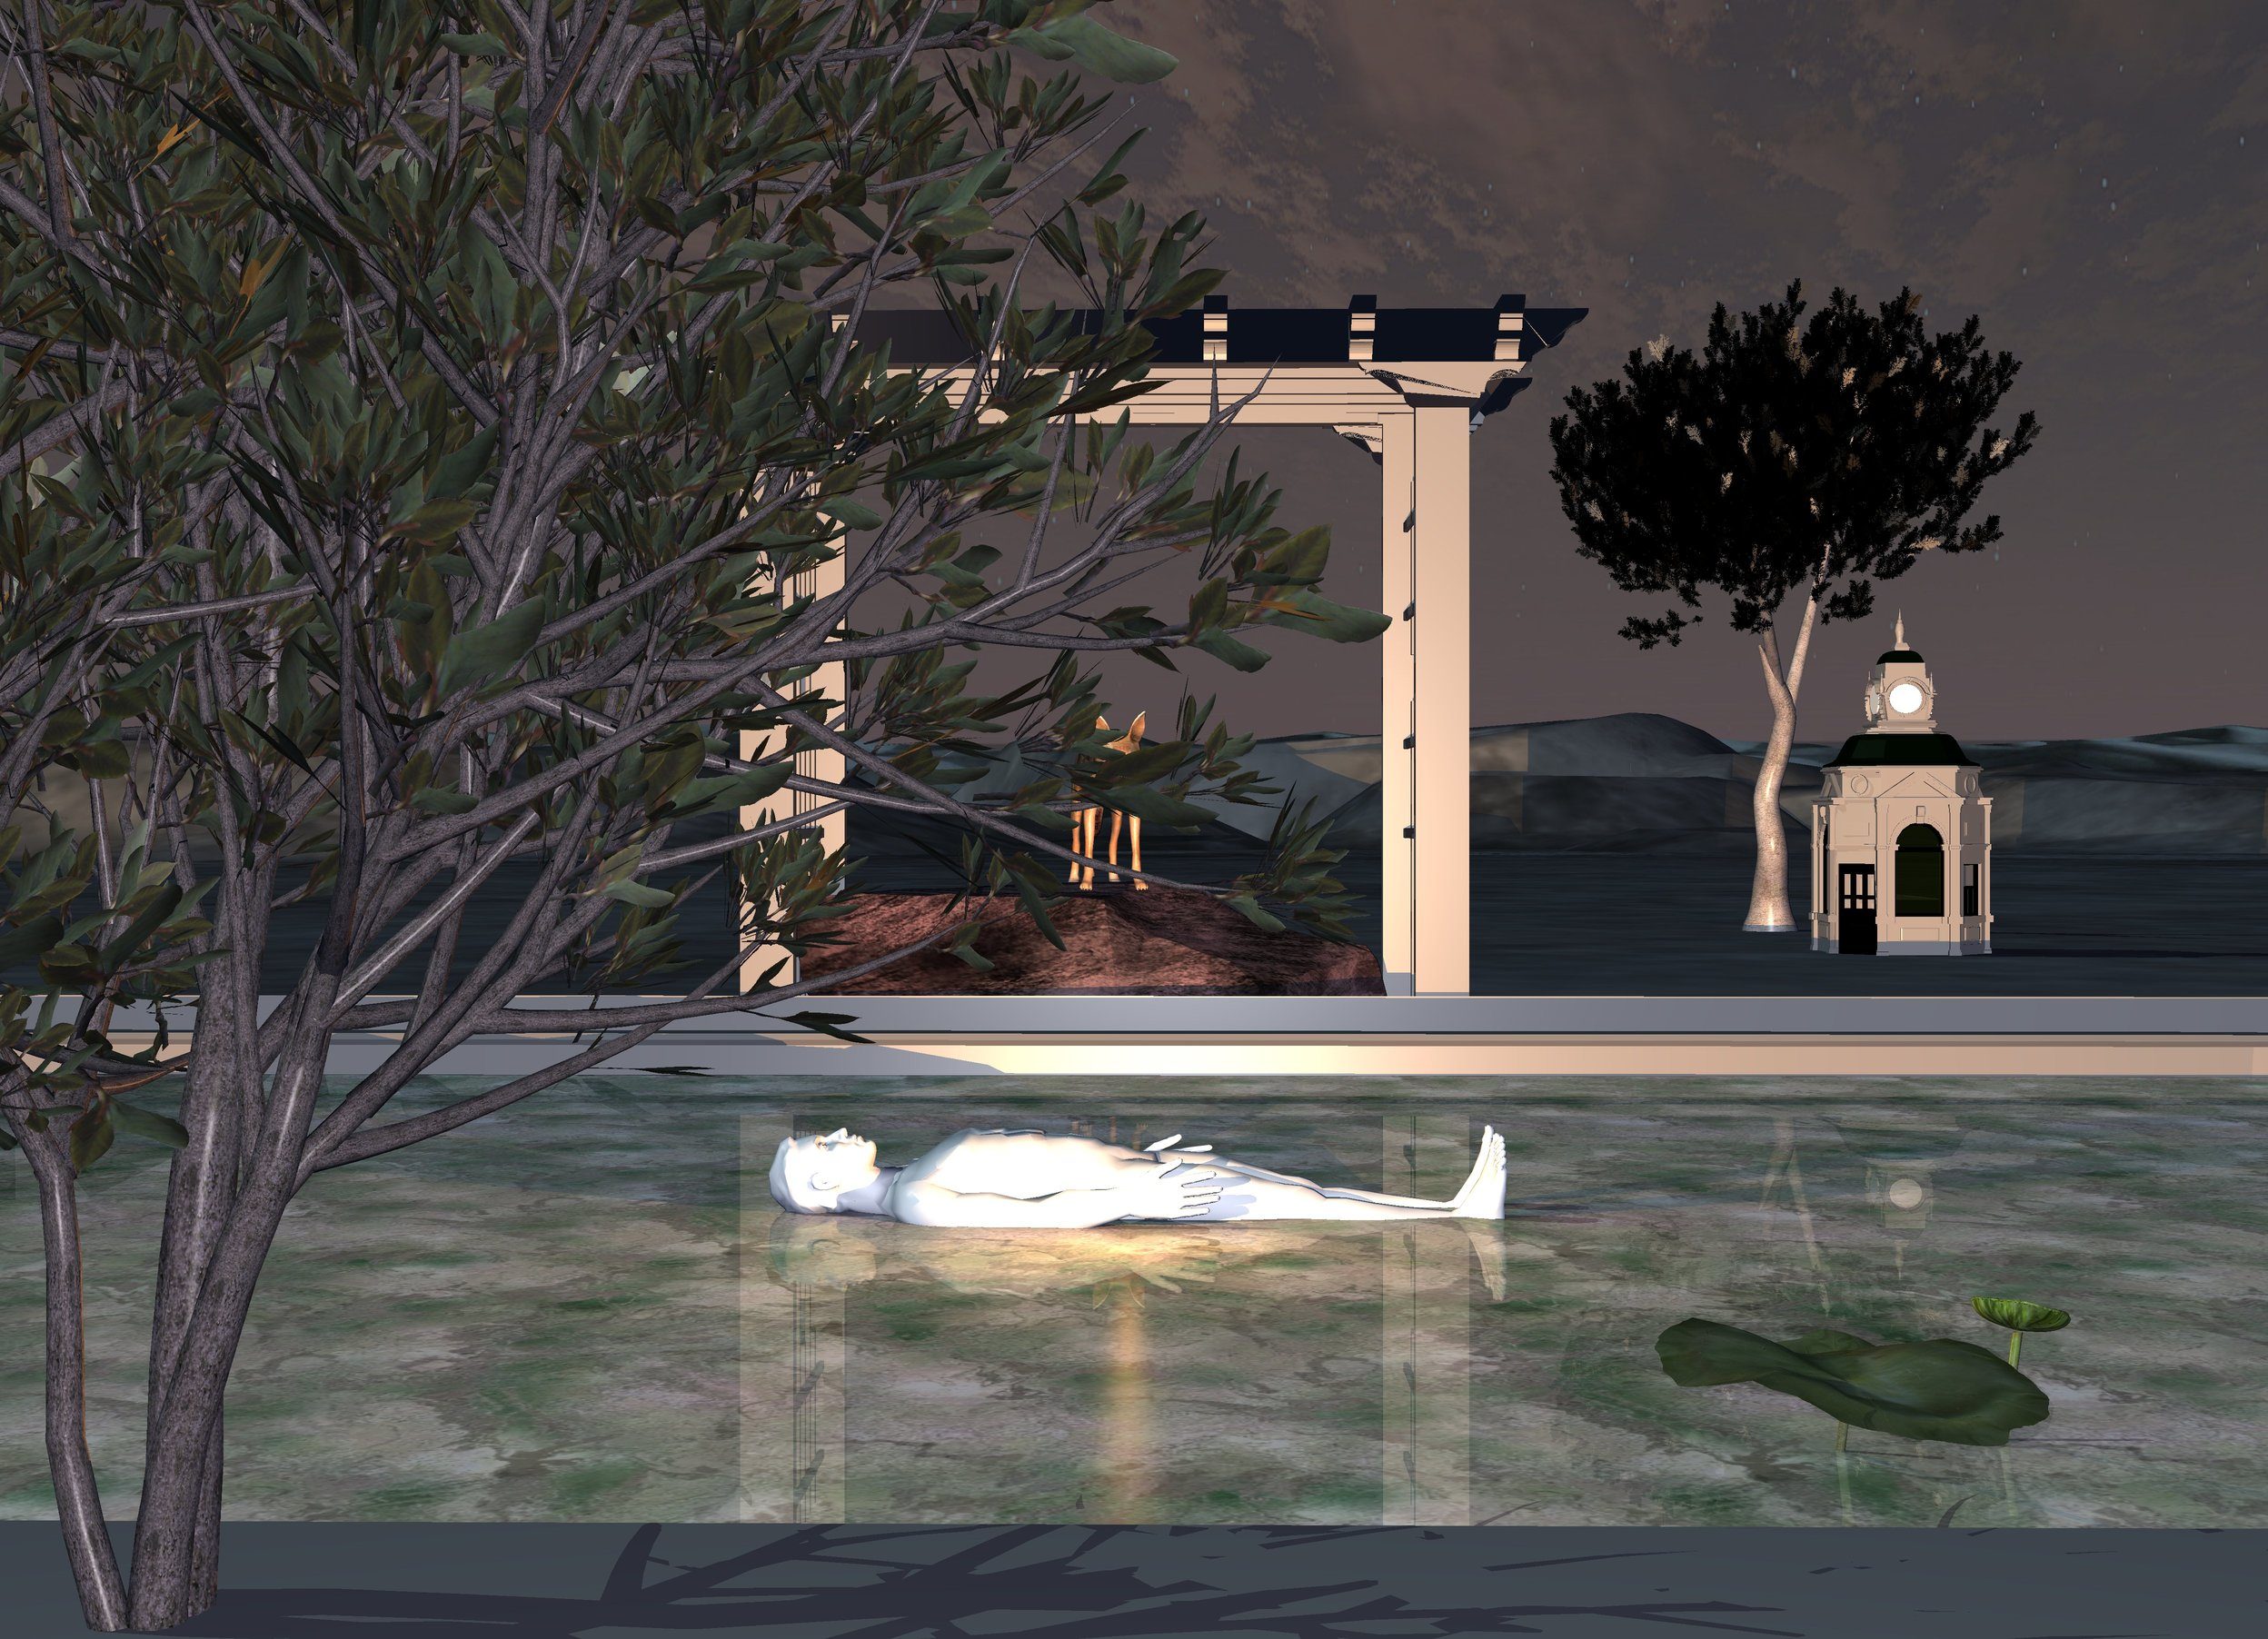 Input text: sun is gray green.  6 foot tall tree. ambient light is indigo blue. swimming pool is -7 feet behind tree and 4.2 foot in ground. swimming pool is facing right. swimming pool's water is 20% reflective 2 foot wide  [texture]. swimming pool's edge is gray. small white man is 1.45 foot in swimming pool and -18 foot to left. man is facing up. man is facing right. gray arbor is behind swimming pool and -20 foot to left. spicy gold light is in front of man. 5.6 foot wide turtledove gray rock is 7.5  foot in arbor. small jackal is -1 inch above rock. small lotus is 2.4 foot in swimming pool and -19 foot to left. lotus is -7 feet to front. jackal is facing lotus. 10 foot tall bristlecone pine is 10 feet behind arbor and 2 feet to right. bristlecone pine is facing left. bristlecone pine's leaf is black. bristlecone pine is 0.1 foot in ground. 4.5 foot tall  gray  kiosk is in front of bristlecone pine and 0.1 foot in ground.